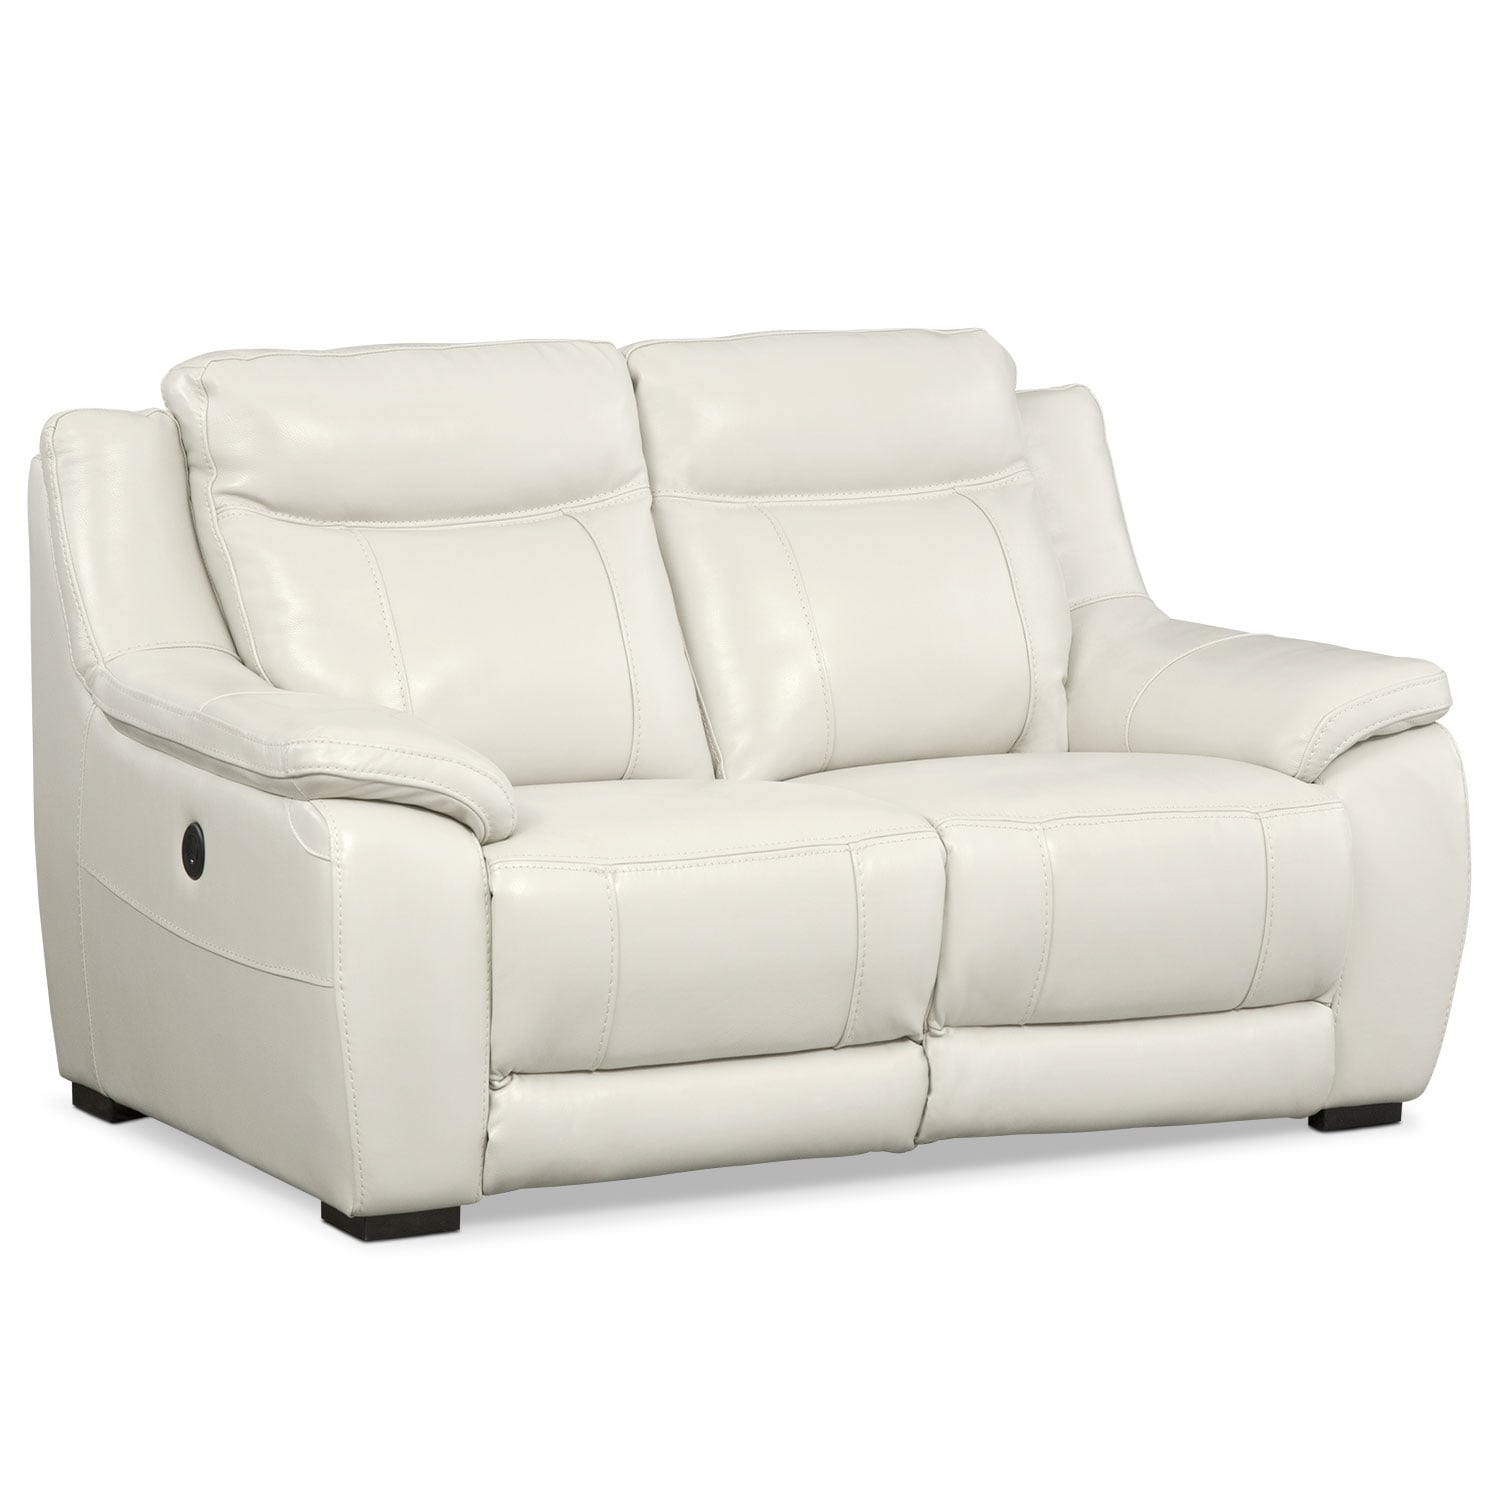 Lido power reclining sofa reclining loveseat and recliner set ivory value city furniture Couches and loveseats